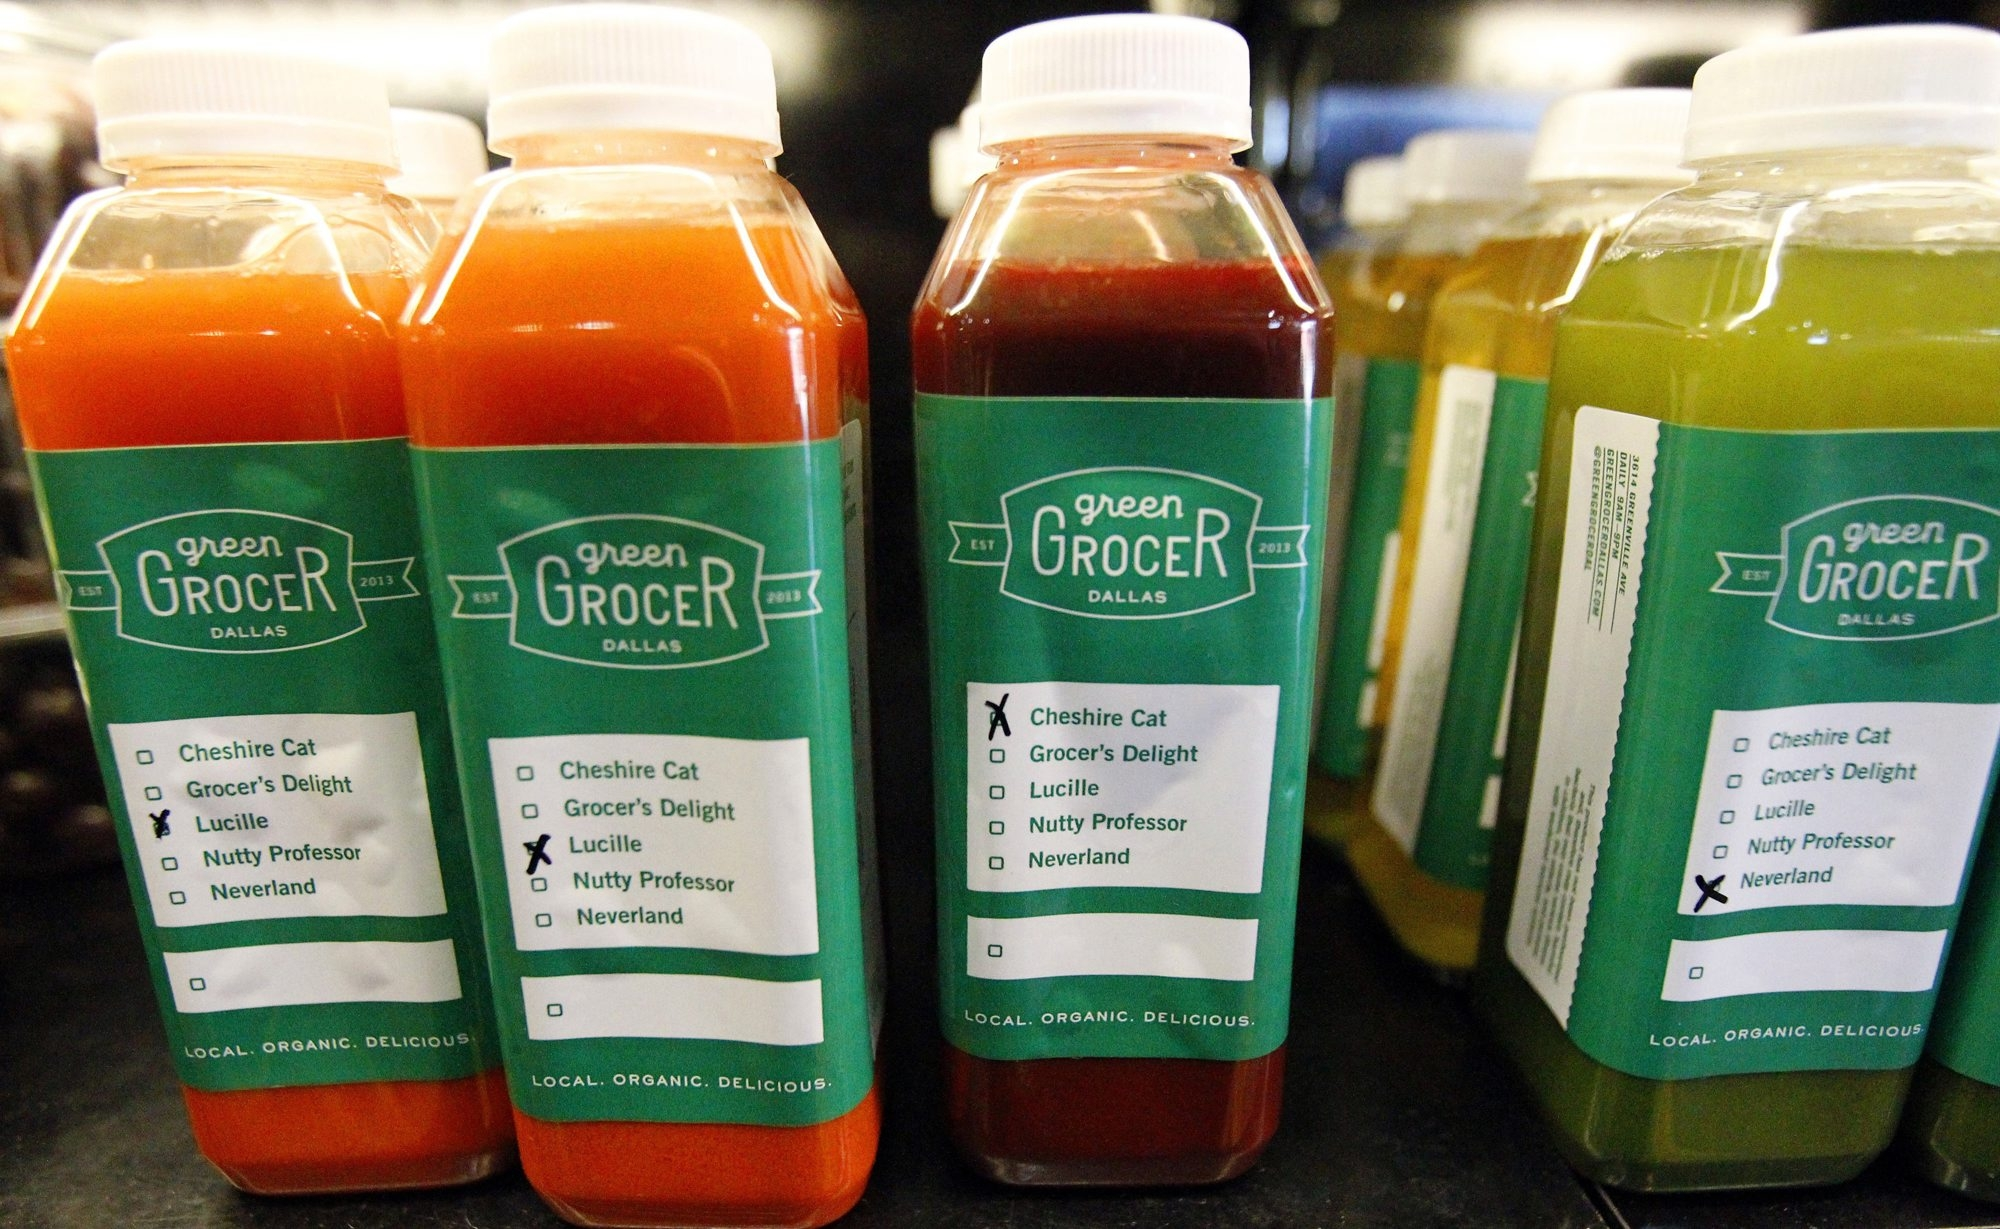 For those not wating to create their own, stores offer bottled juices ready to go. (Mona Reeder/Dallas Morning News/MCT)